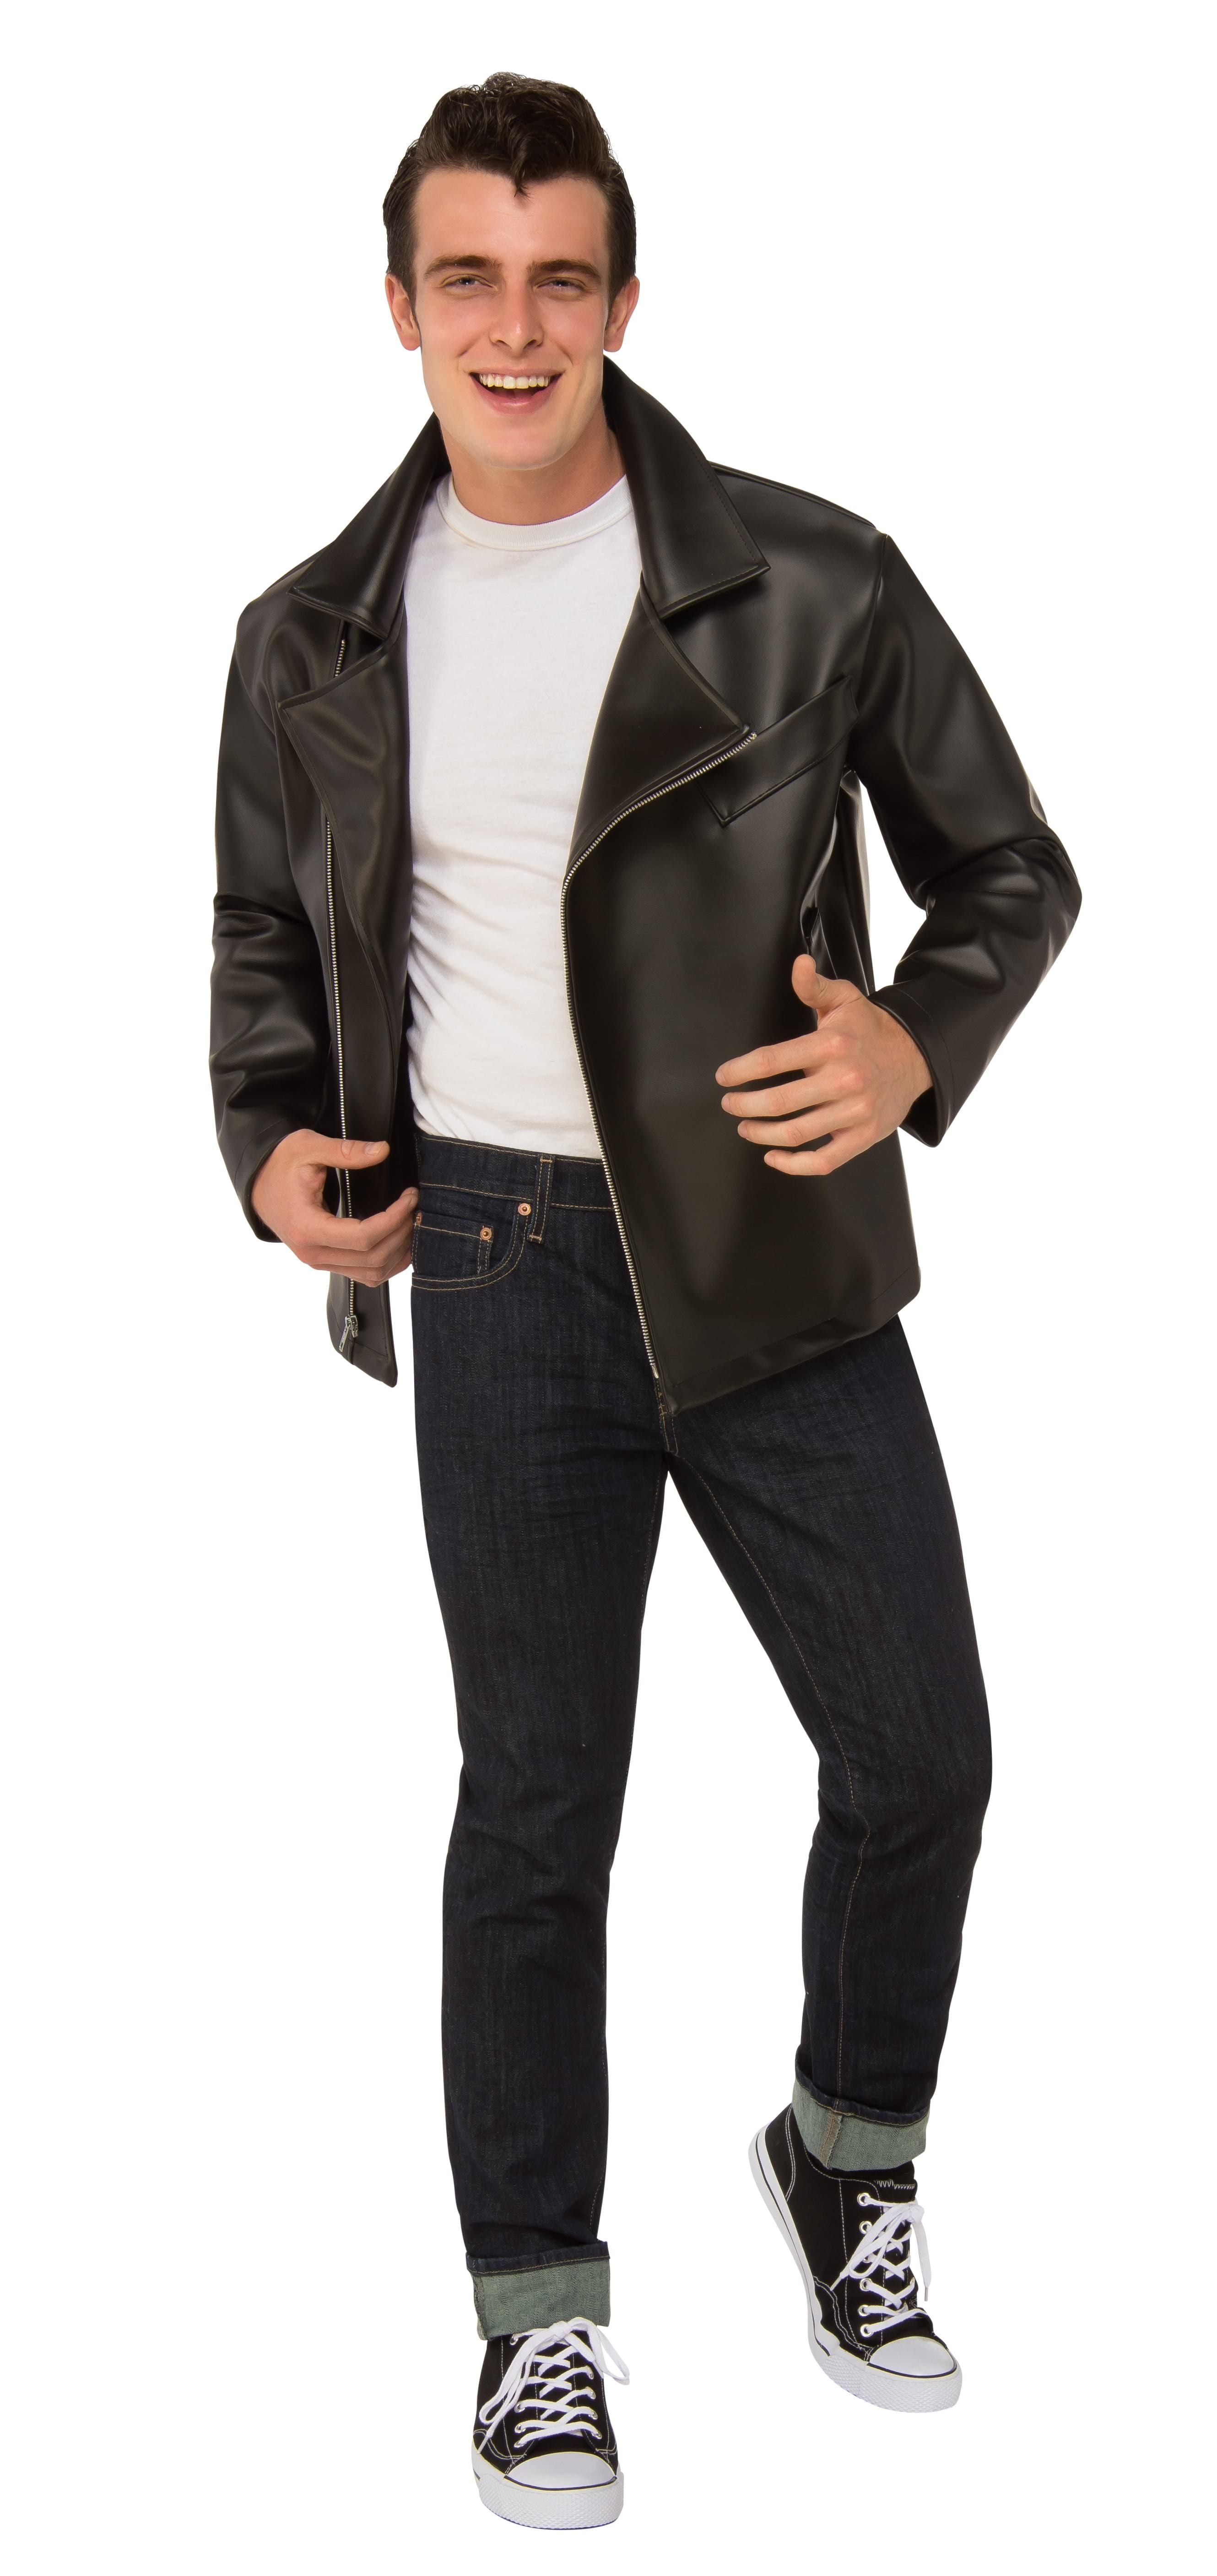 Rubies Costumes SMALL Adult T-Birds Greaser Jacket - Grease